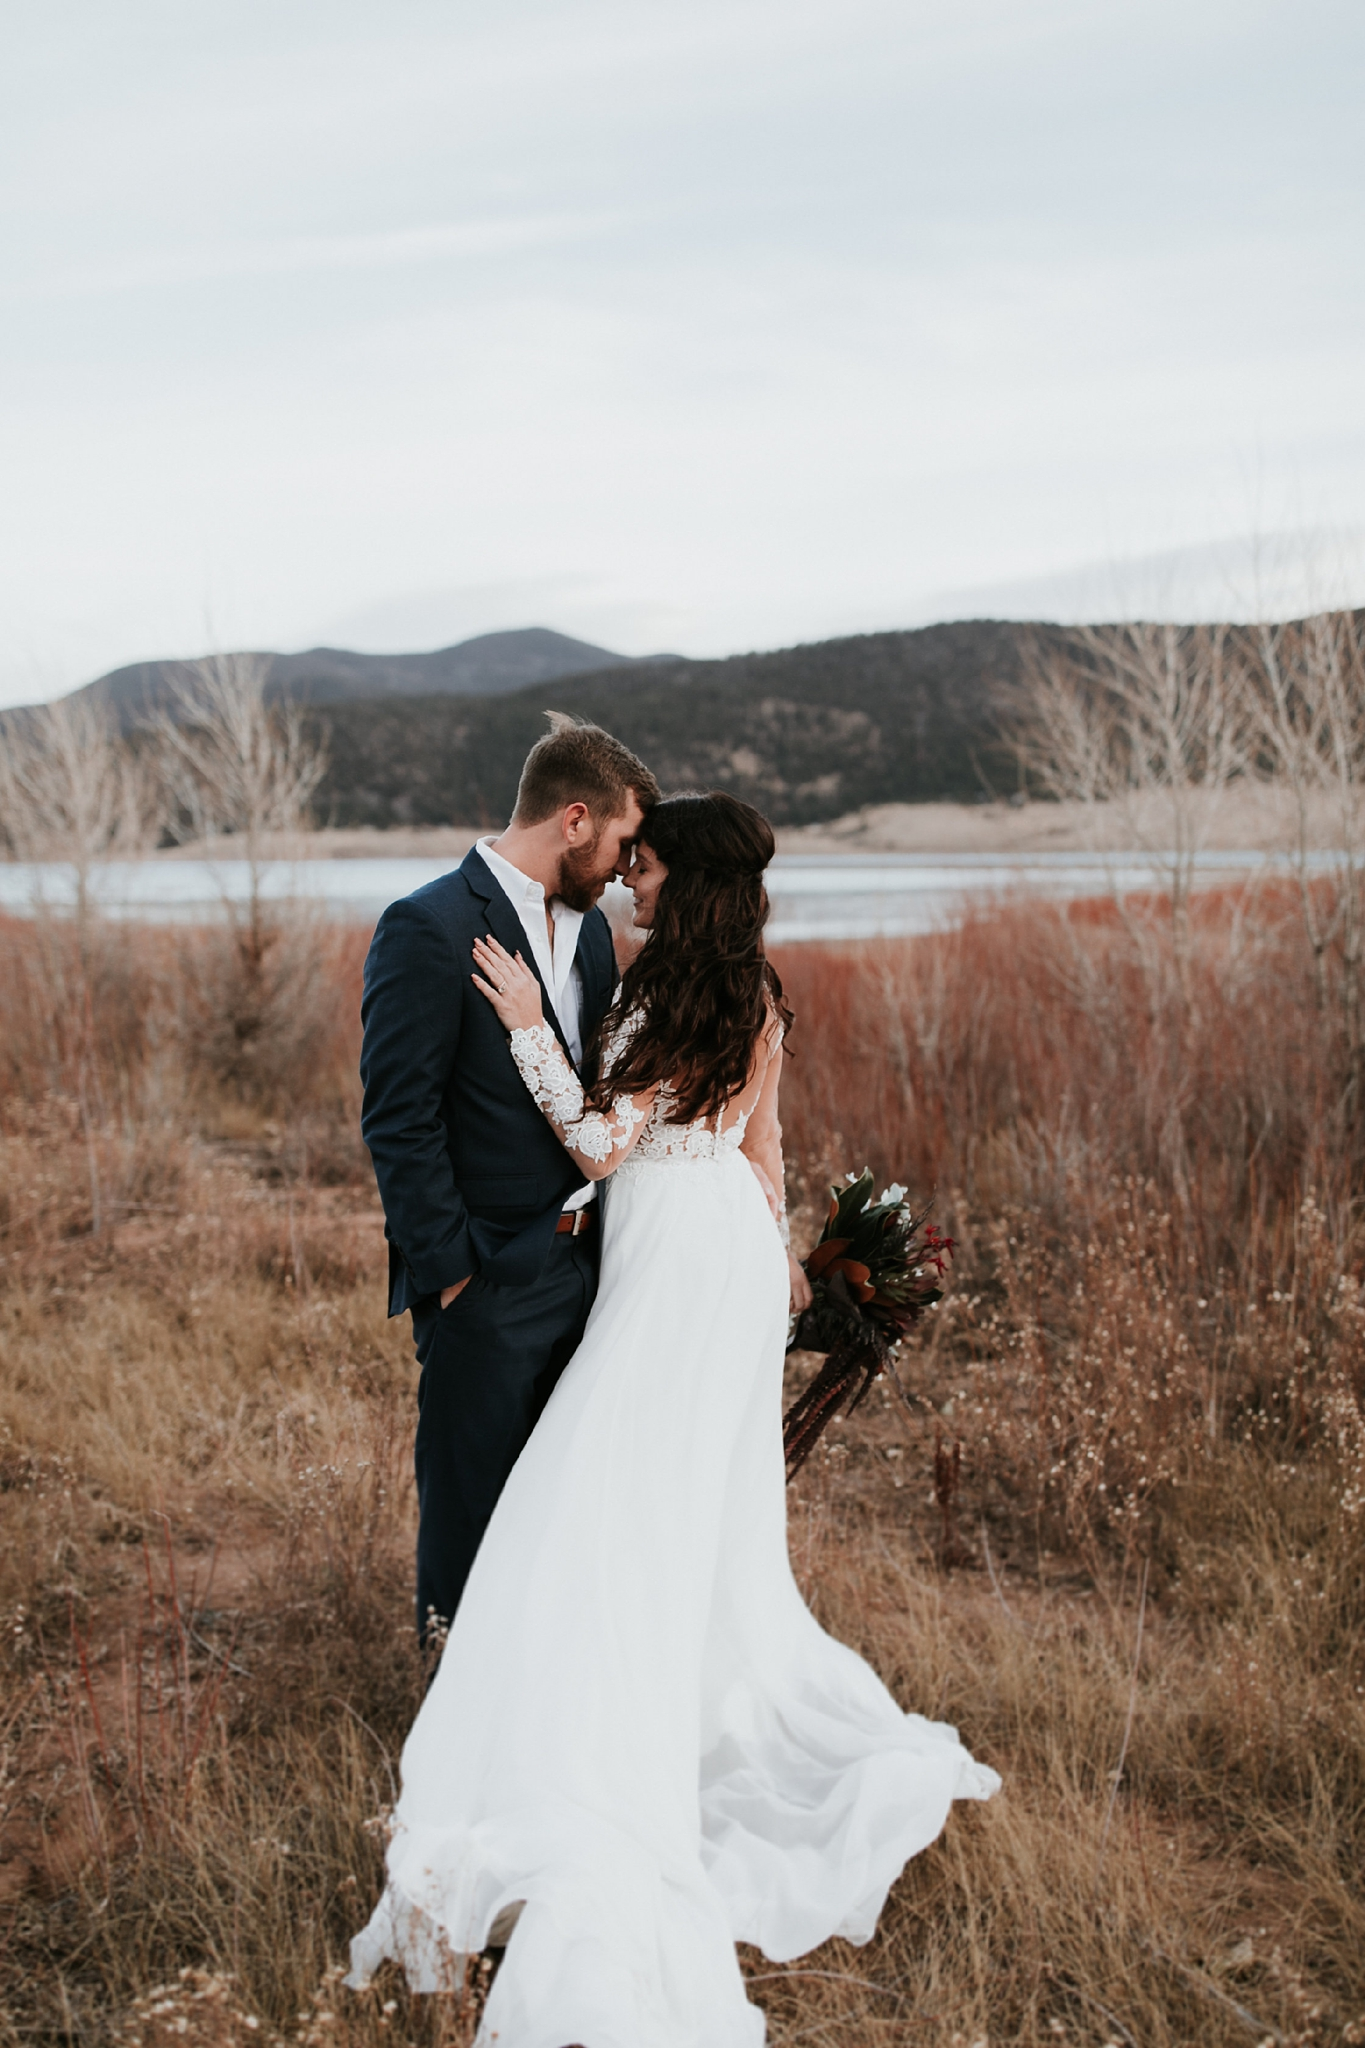 Alicia+lucia+photography+-+albuquerque+wedding+photographer+-+santa+fe+wedding+photography+-+new+mexico+wedding+photographer+-+new+mexico+wedding+-+wedding+gowns+-+bridal+gowns+-+a+line+wedding+gown_0007.jpg